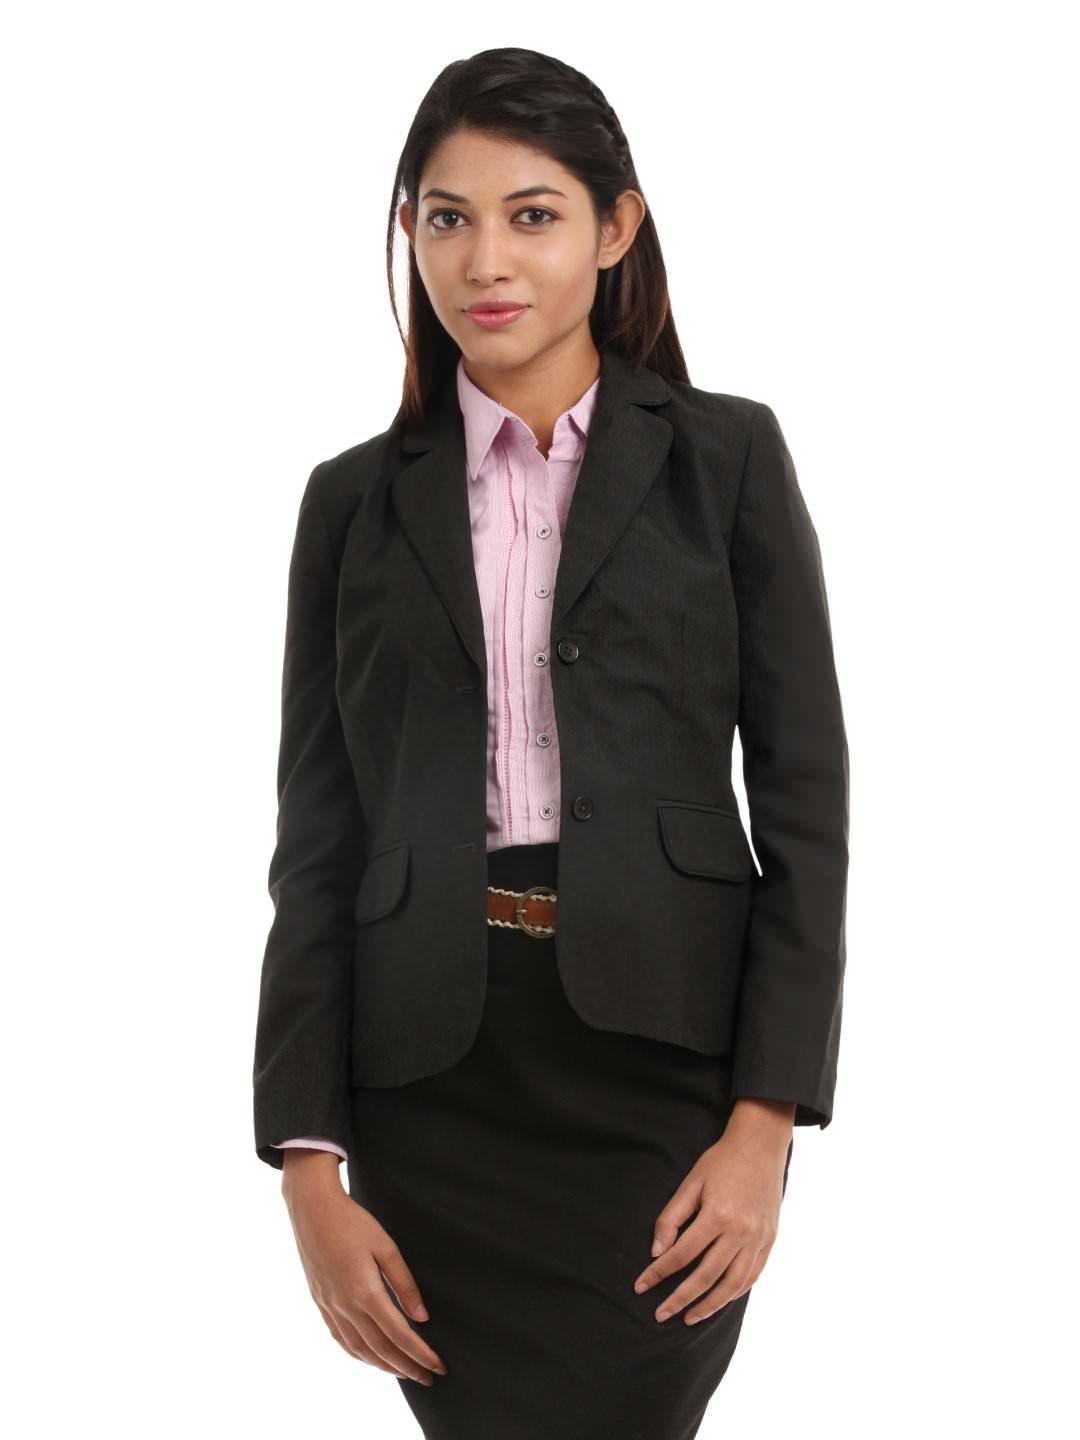 A pair of classic black slacks is an essential part of a woman's interview wardrobe. It's worth it to invest in a pair of quality black dress pants that fit well and will hold up after many wears.